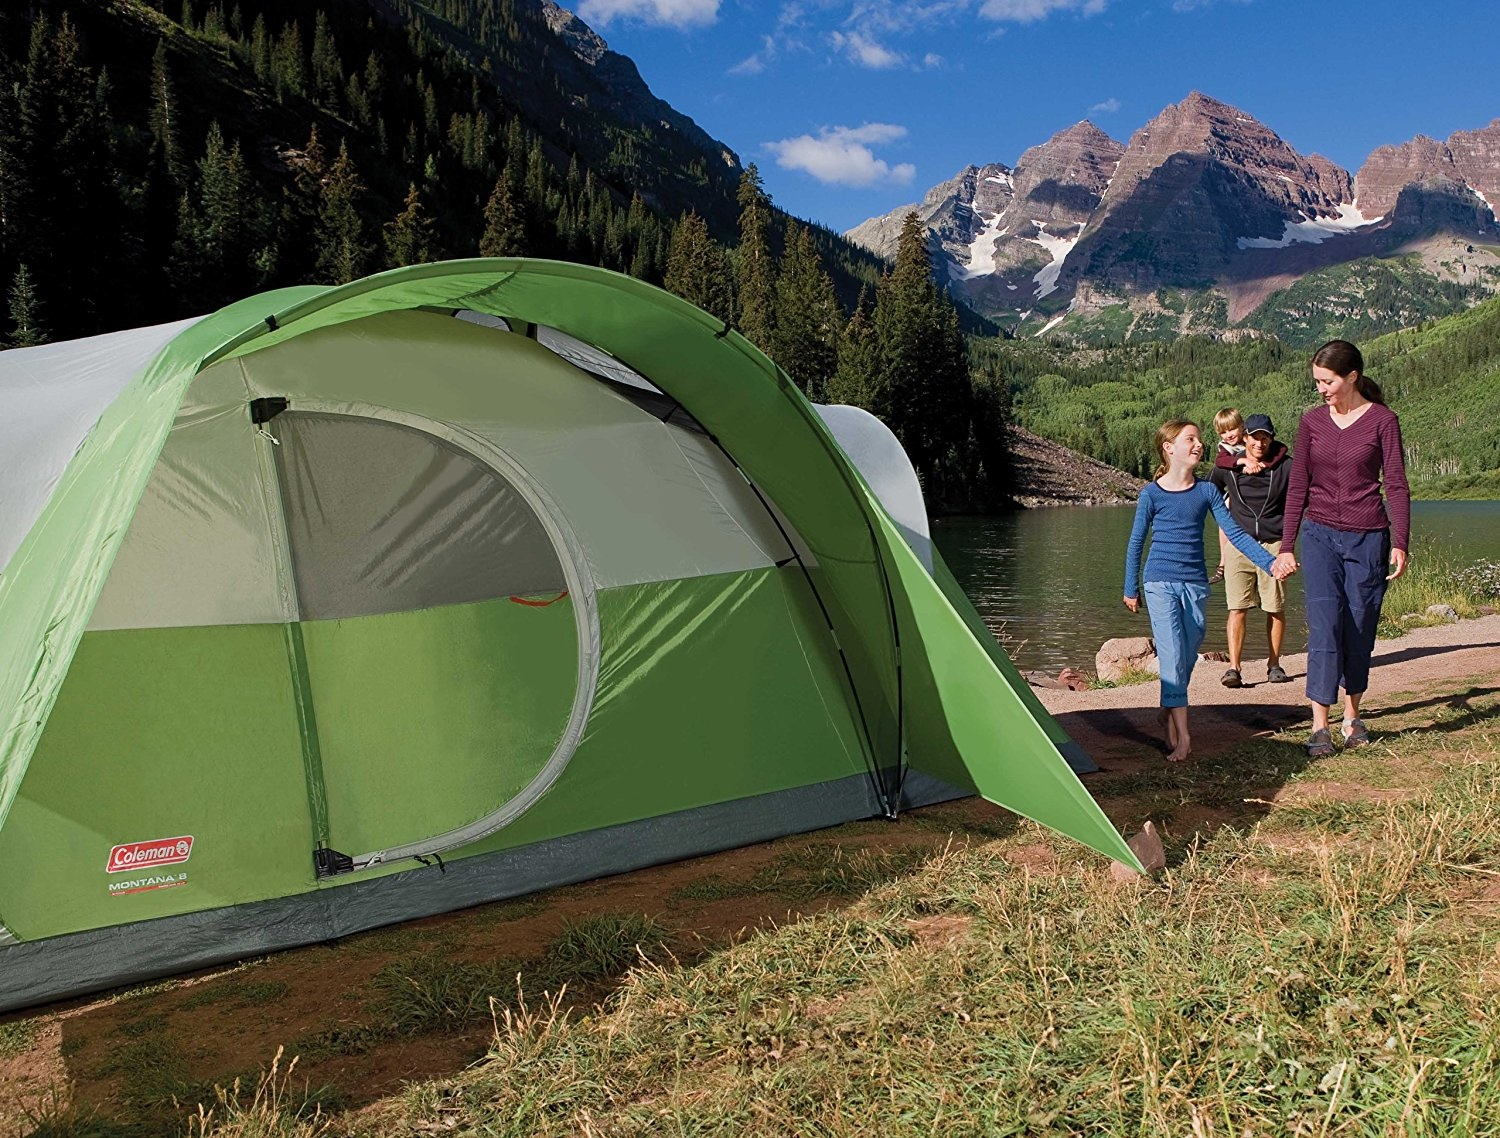 The 7 Best Family Camping Tents Reviewed For 2019